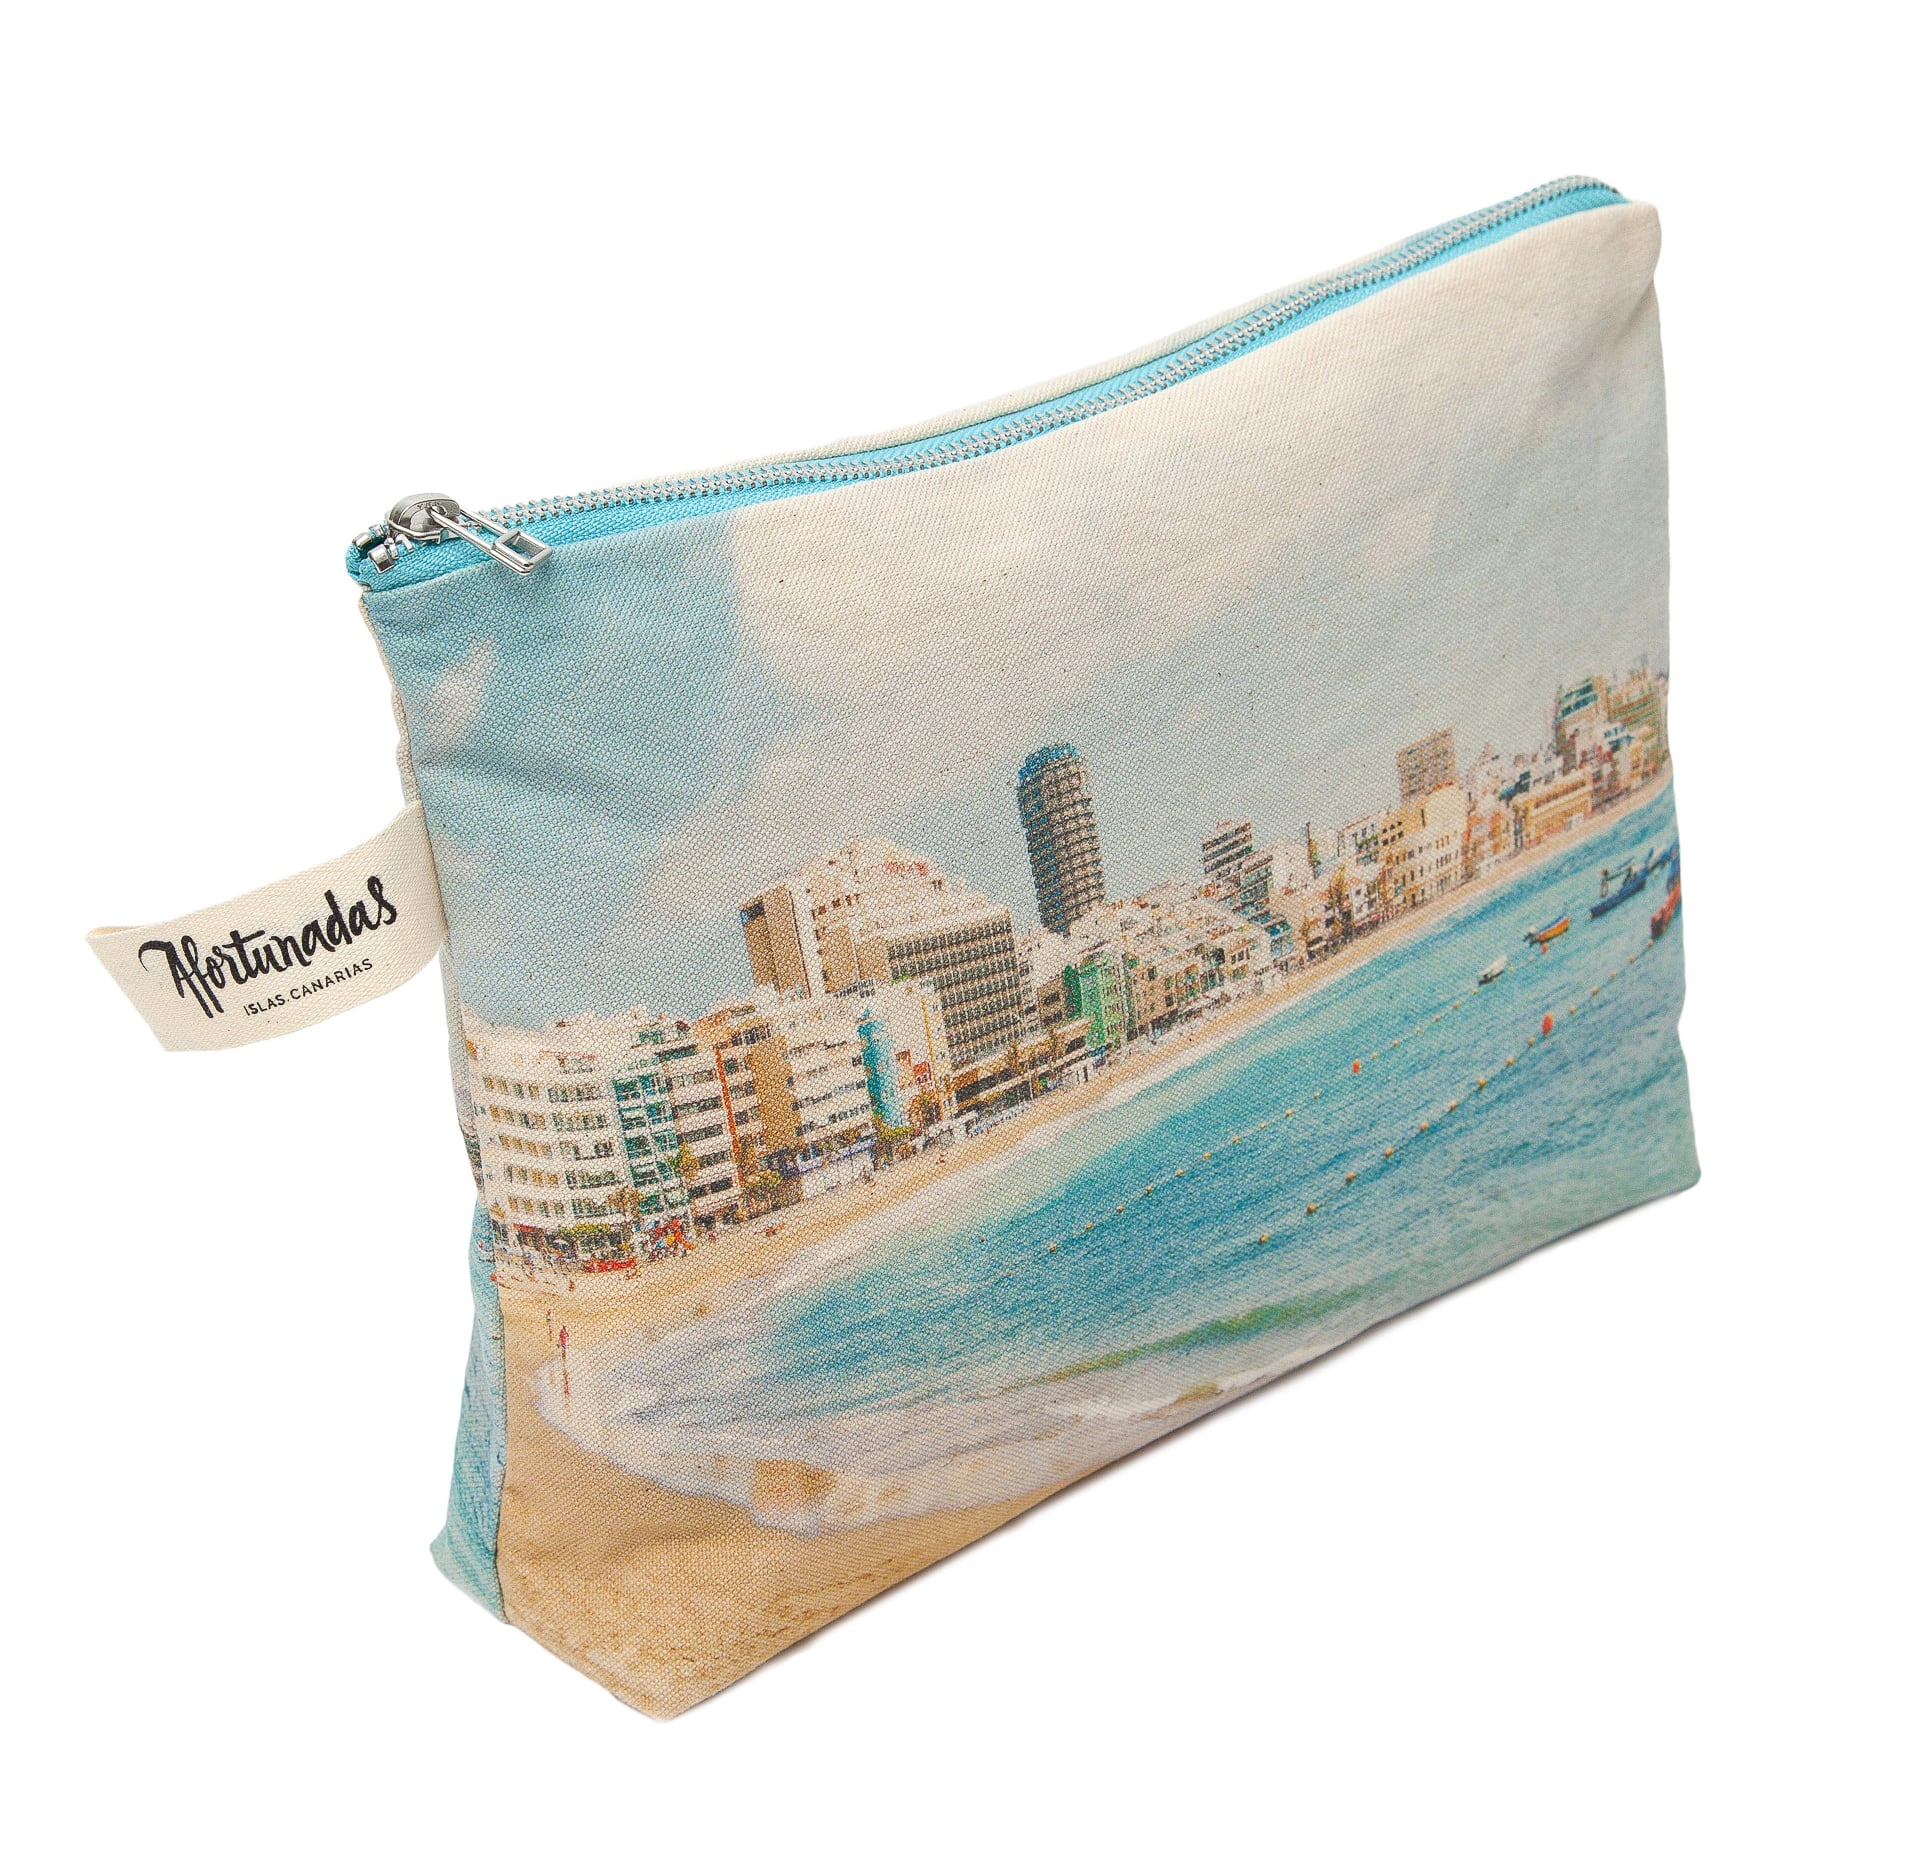 Las Canteras Front Pouch Side